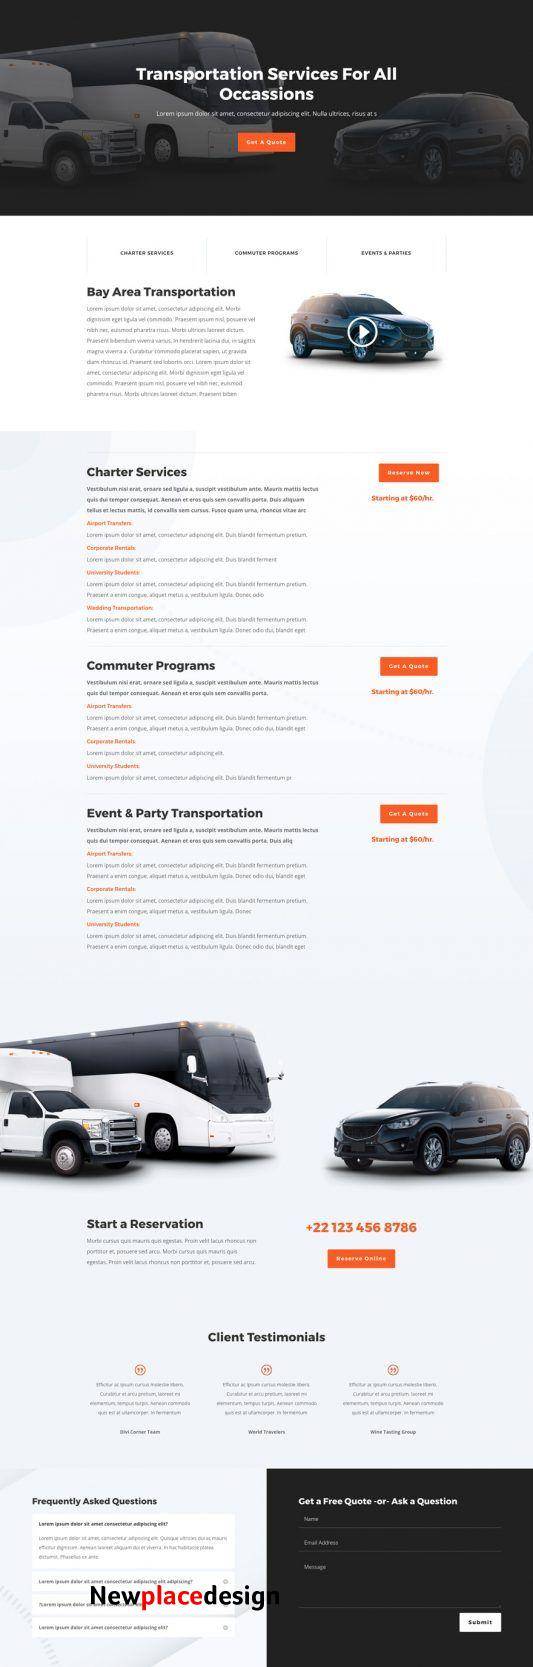 The Transportation Services Layout Pack is an excellent choice if you want to get a website up